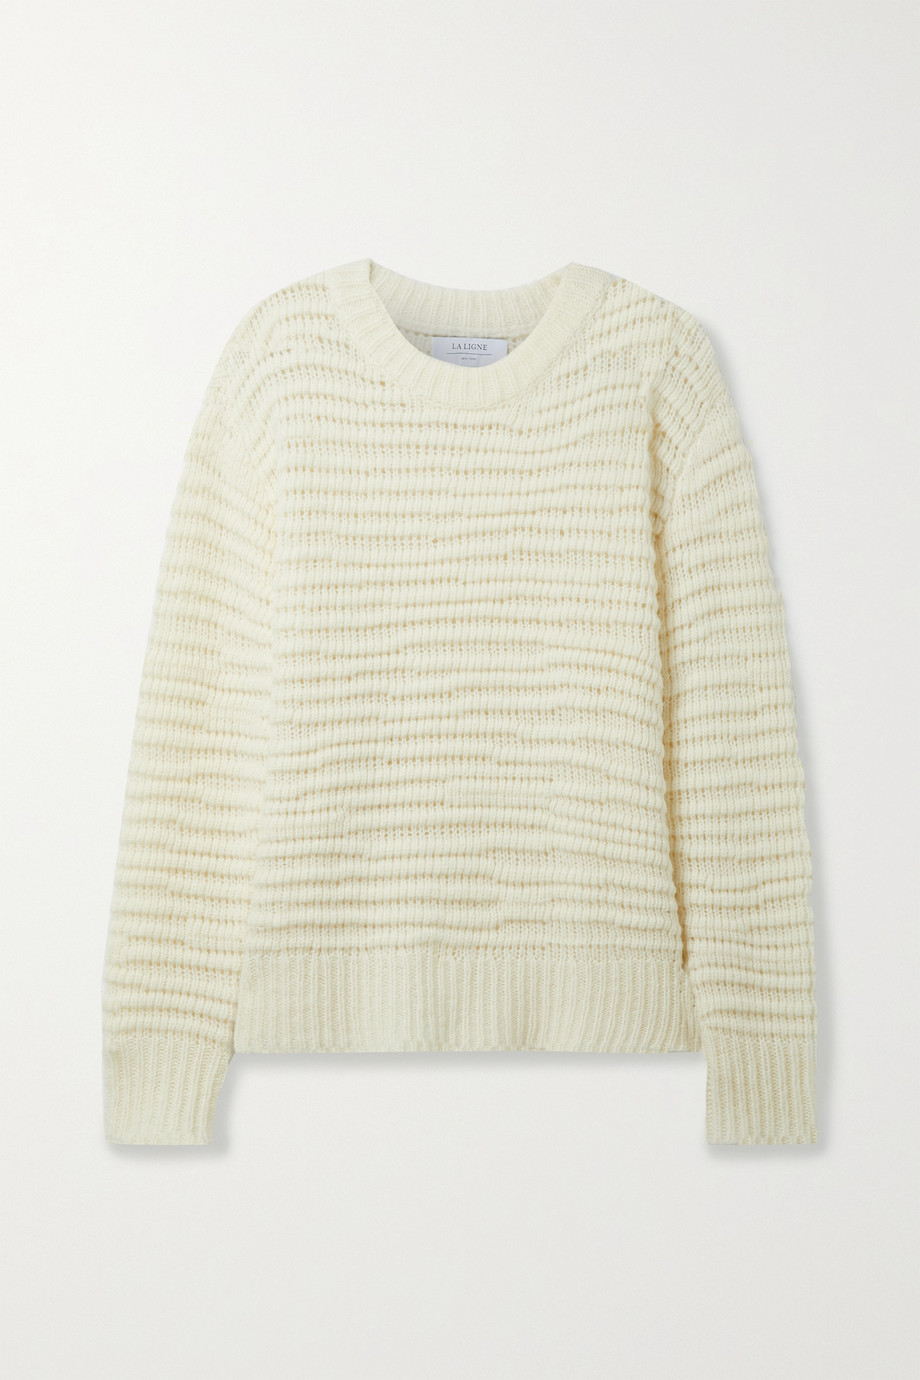 LA LIGNE Nuage open-knit wool and cashmere-blend sweater